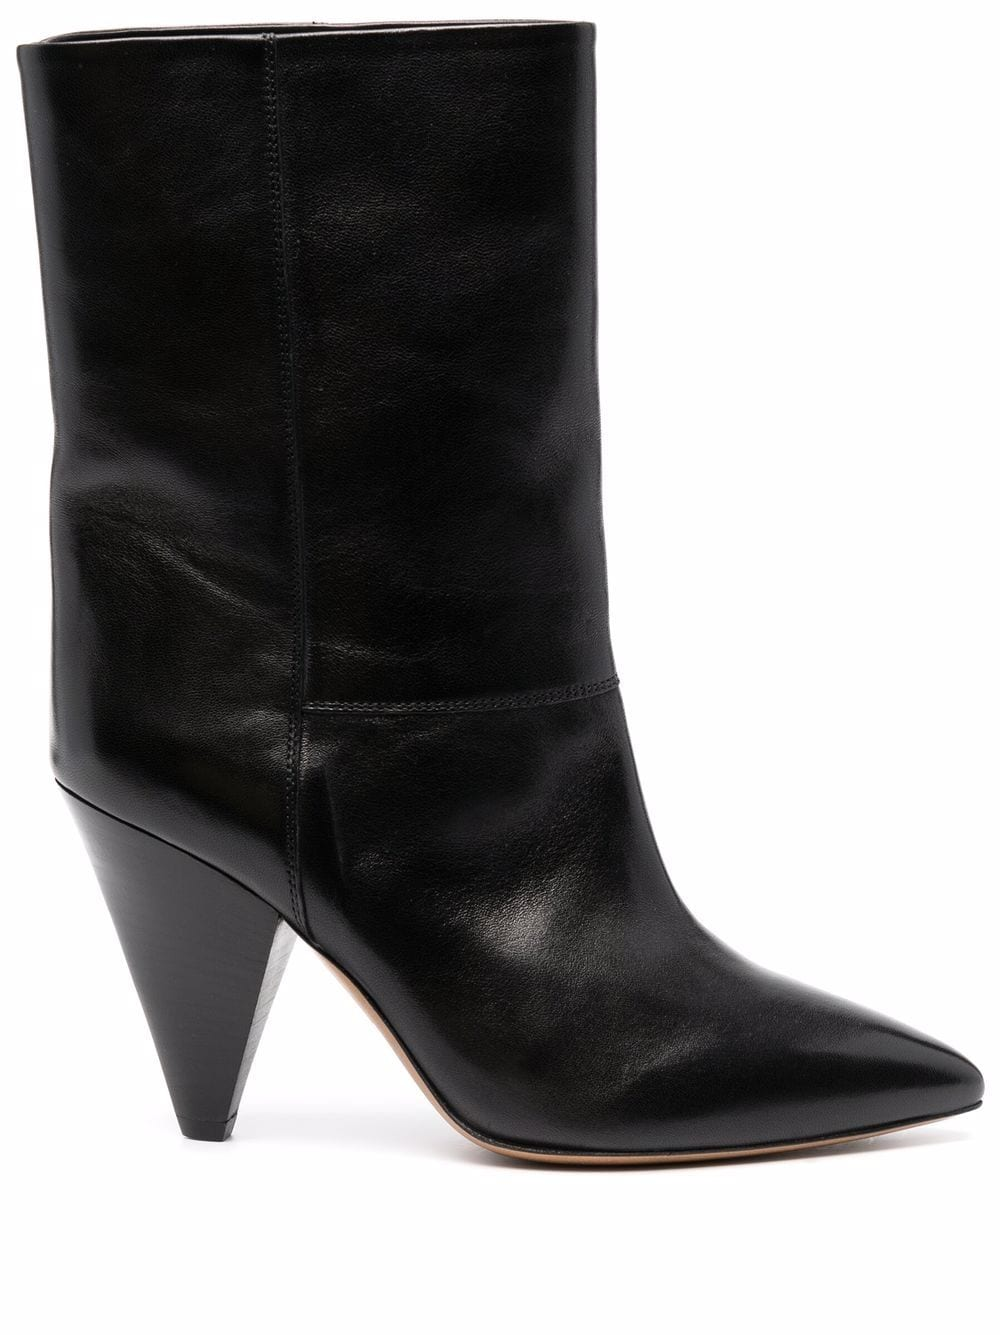 <p class='small-title'>ISABEL MARANT</p>Cone Heels Boots